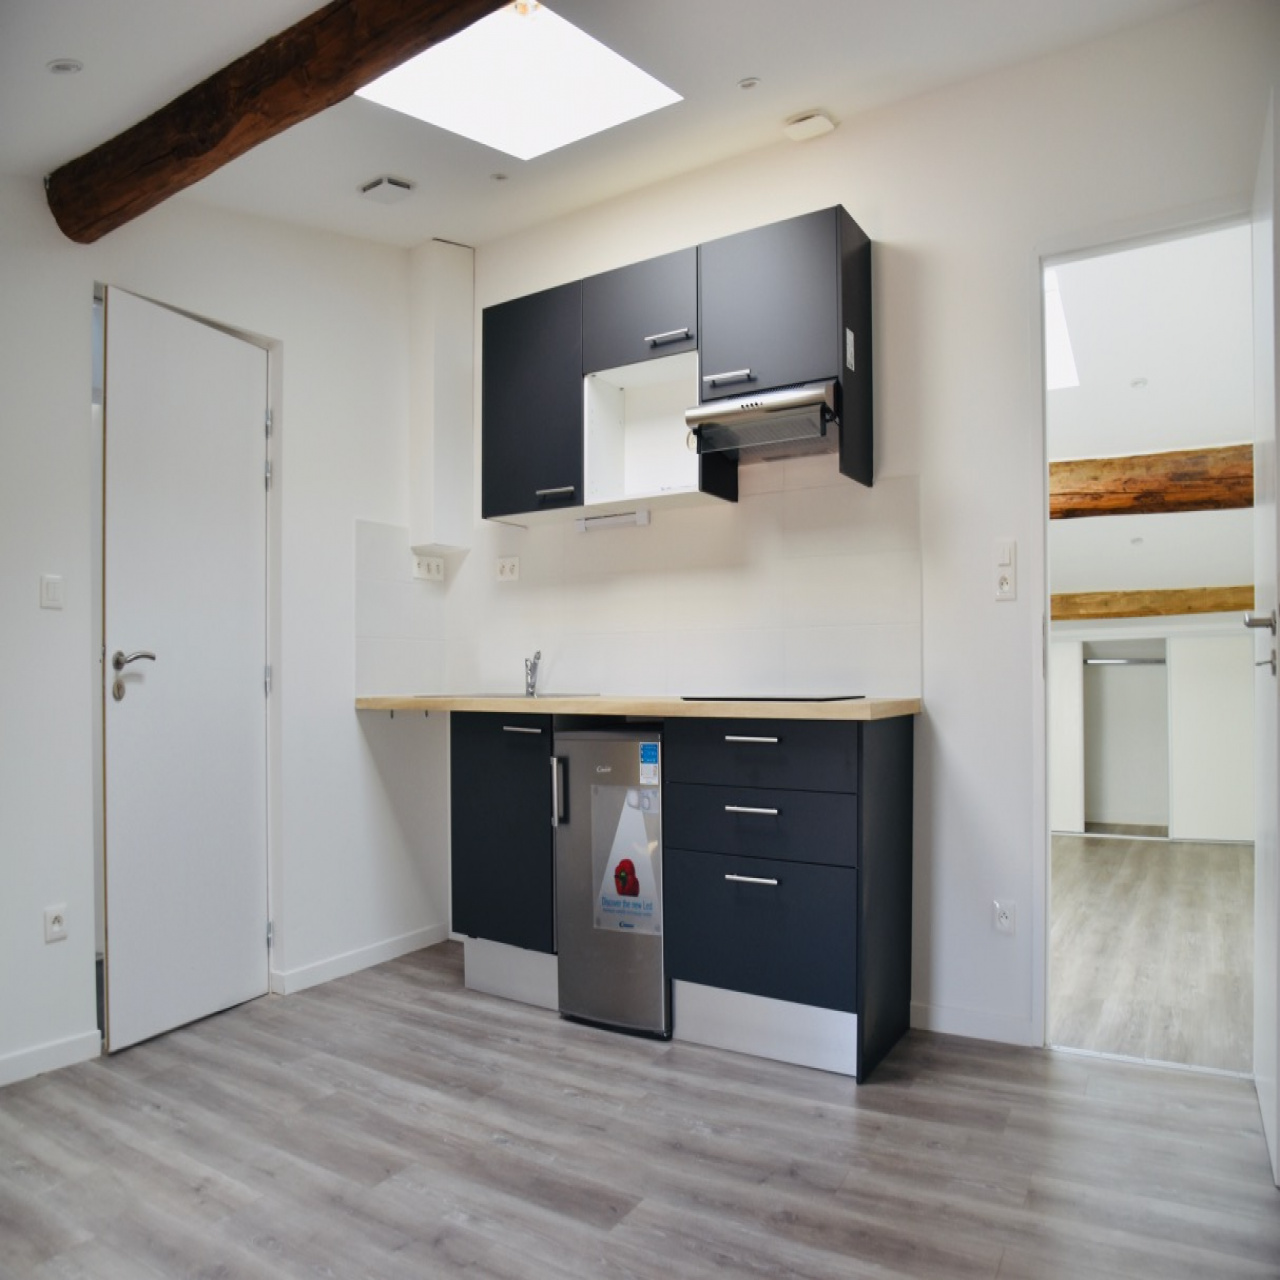 Image_1, Appartement, Toulouse, ref :DP572.1